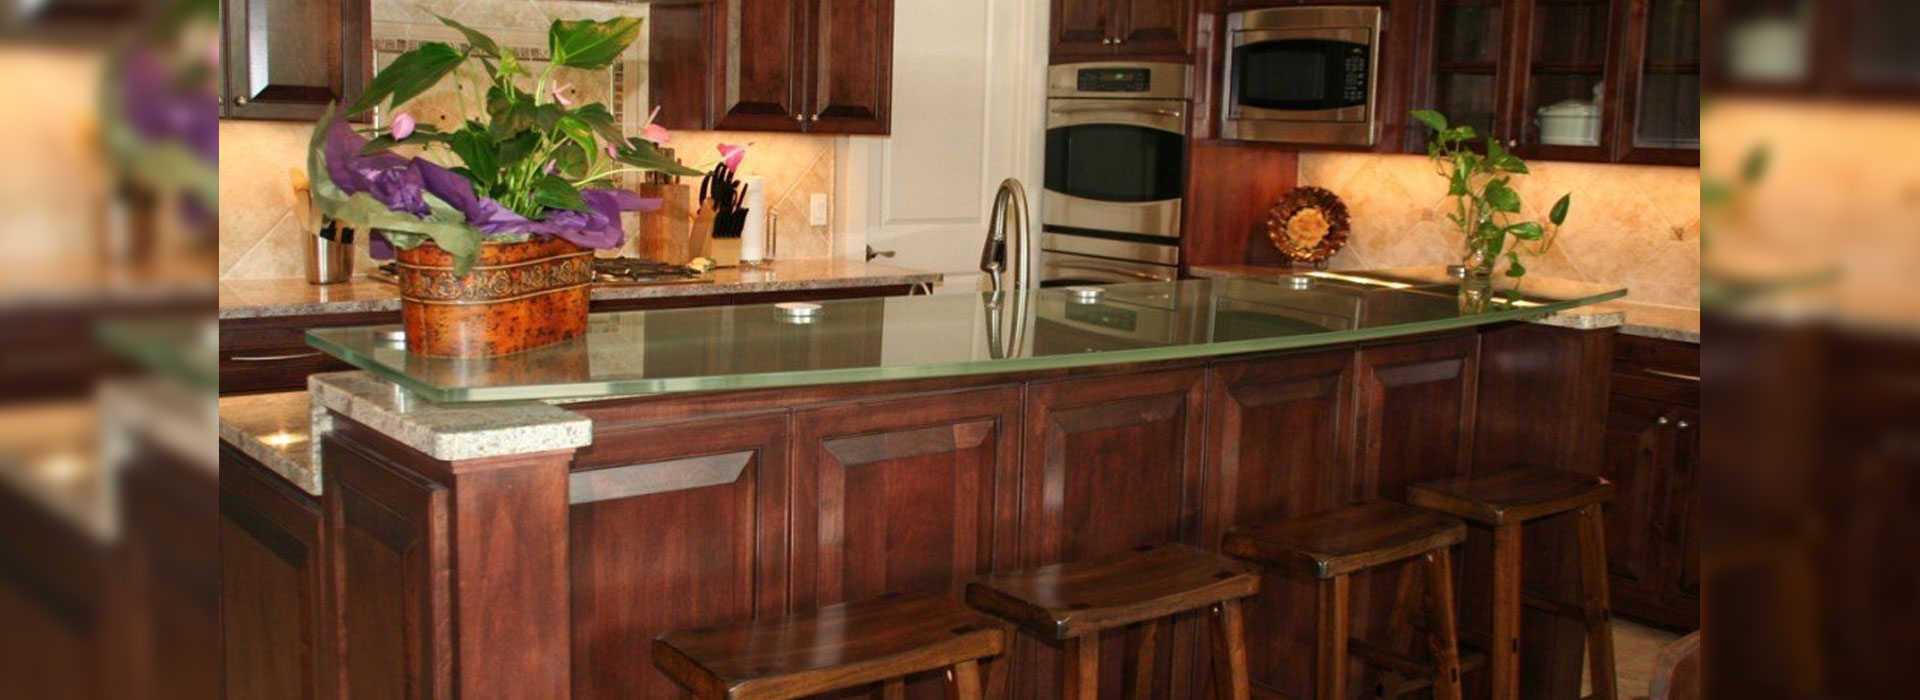 Glass Countertops / Table Tops | Residential Glass Products | Anchor-Ventana Glass Company | Austin TX Glass